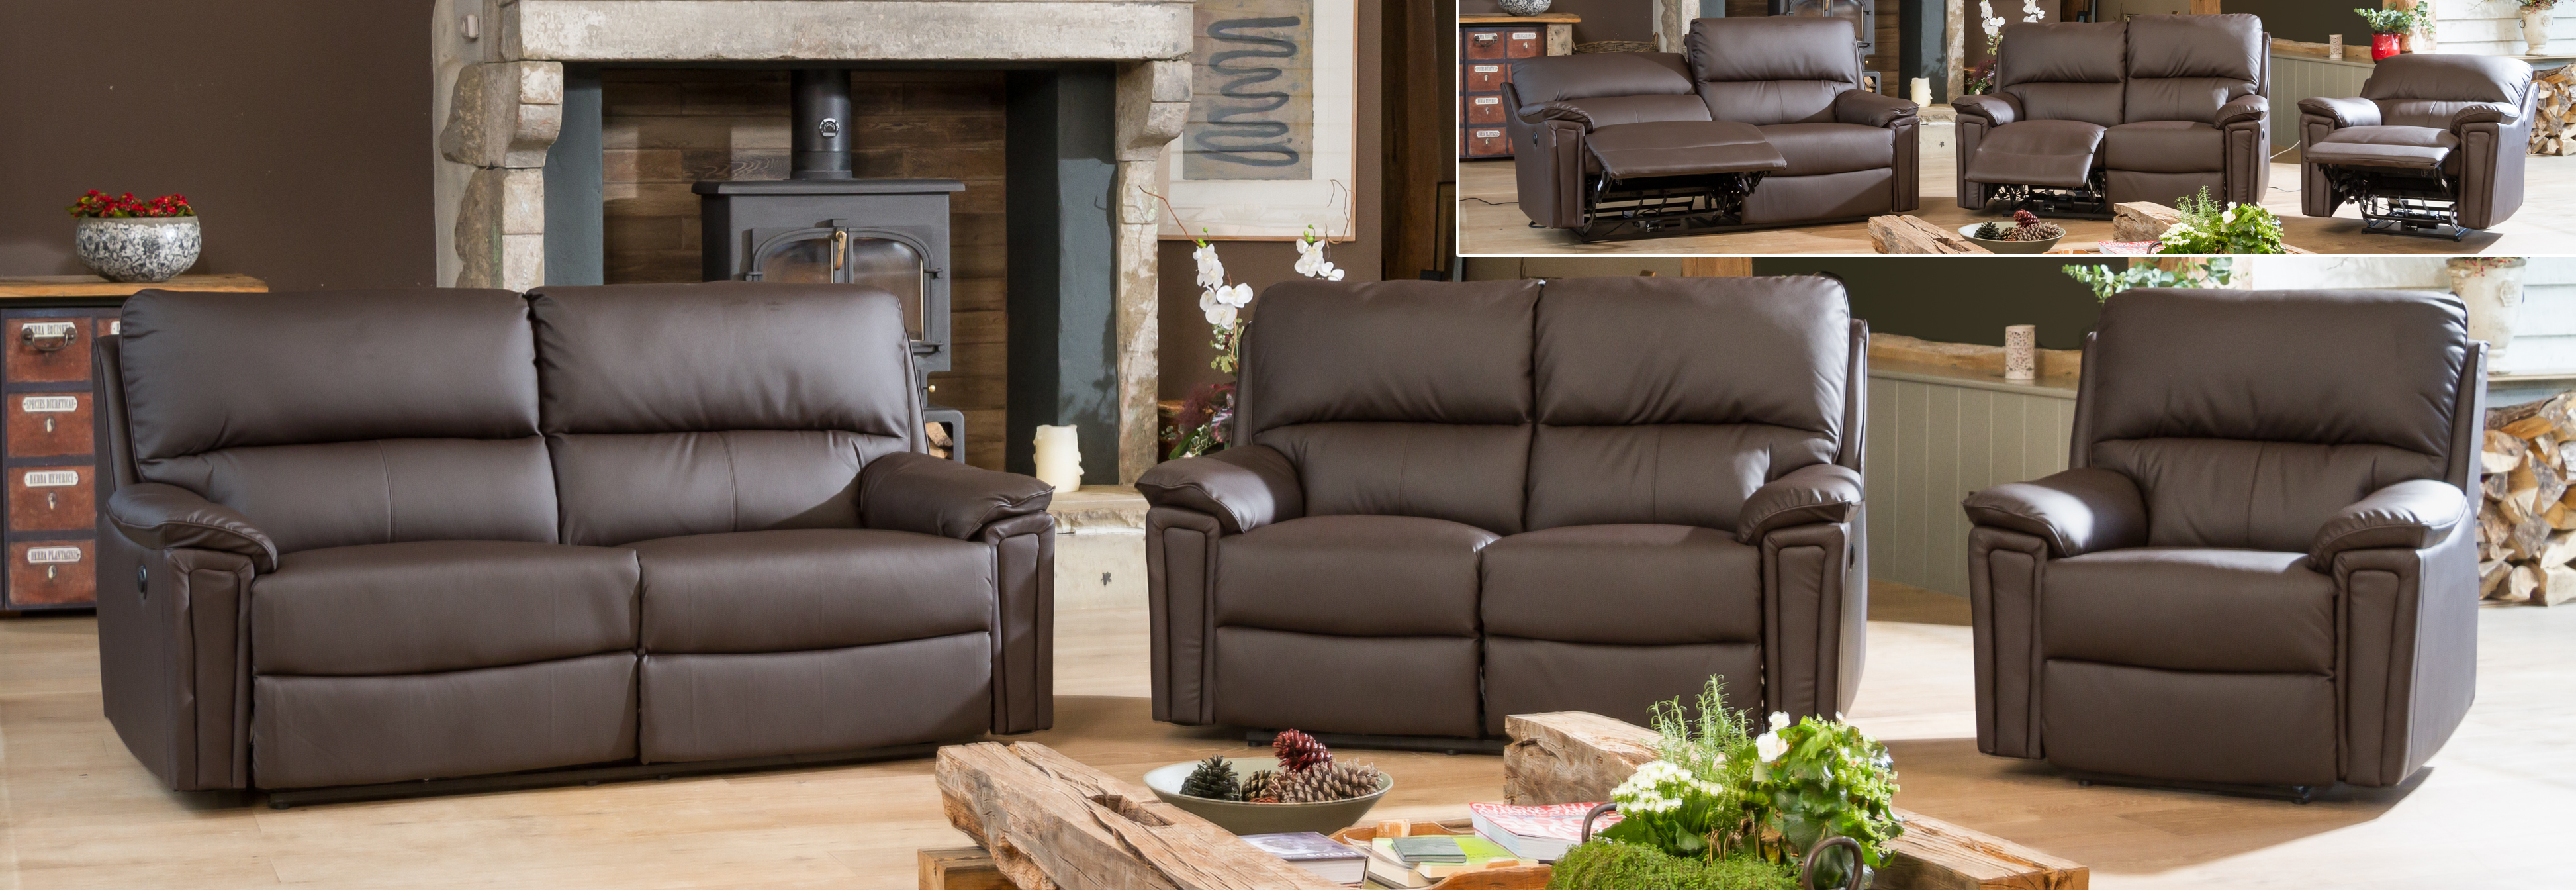 Radstock Electric Reclining Suite brown